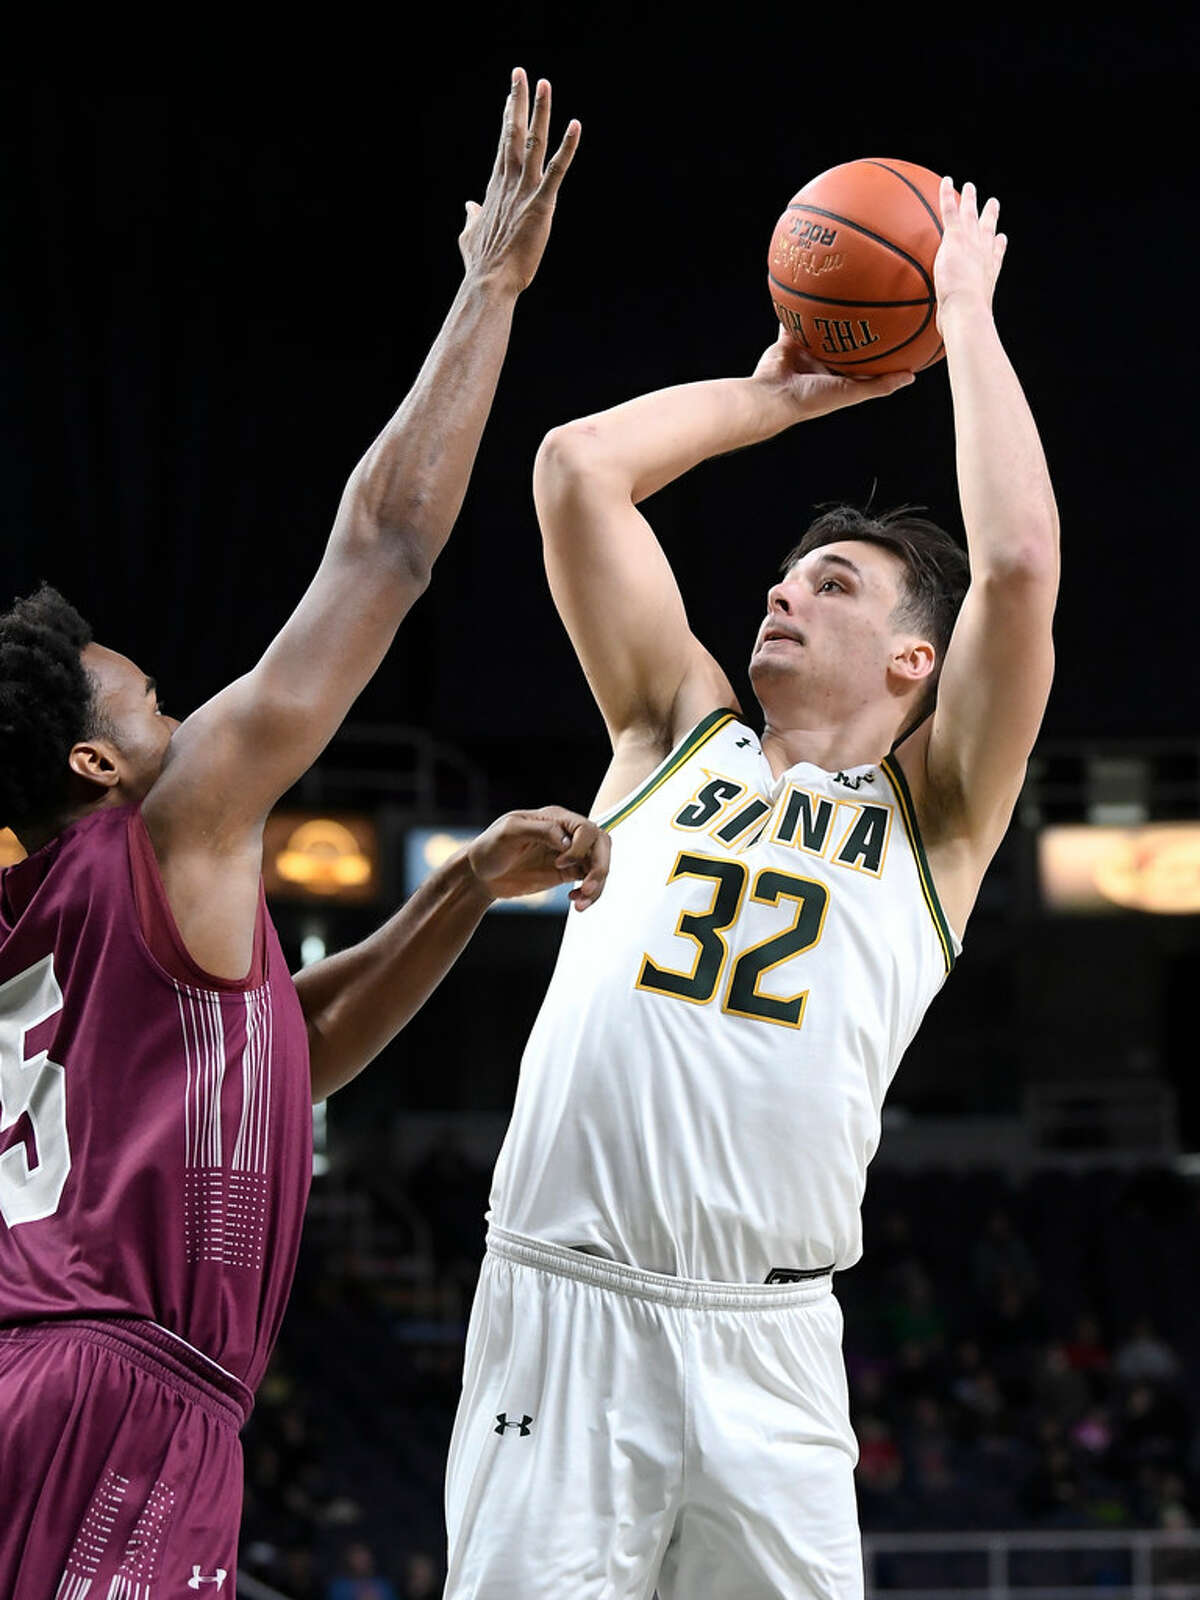 Siena's Evan Fisher shot 9 of 12 from the field for 22 points in an 84-79 loss to Colgate on Saturday. (Hans Pennink/Special to the Times Union)